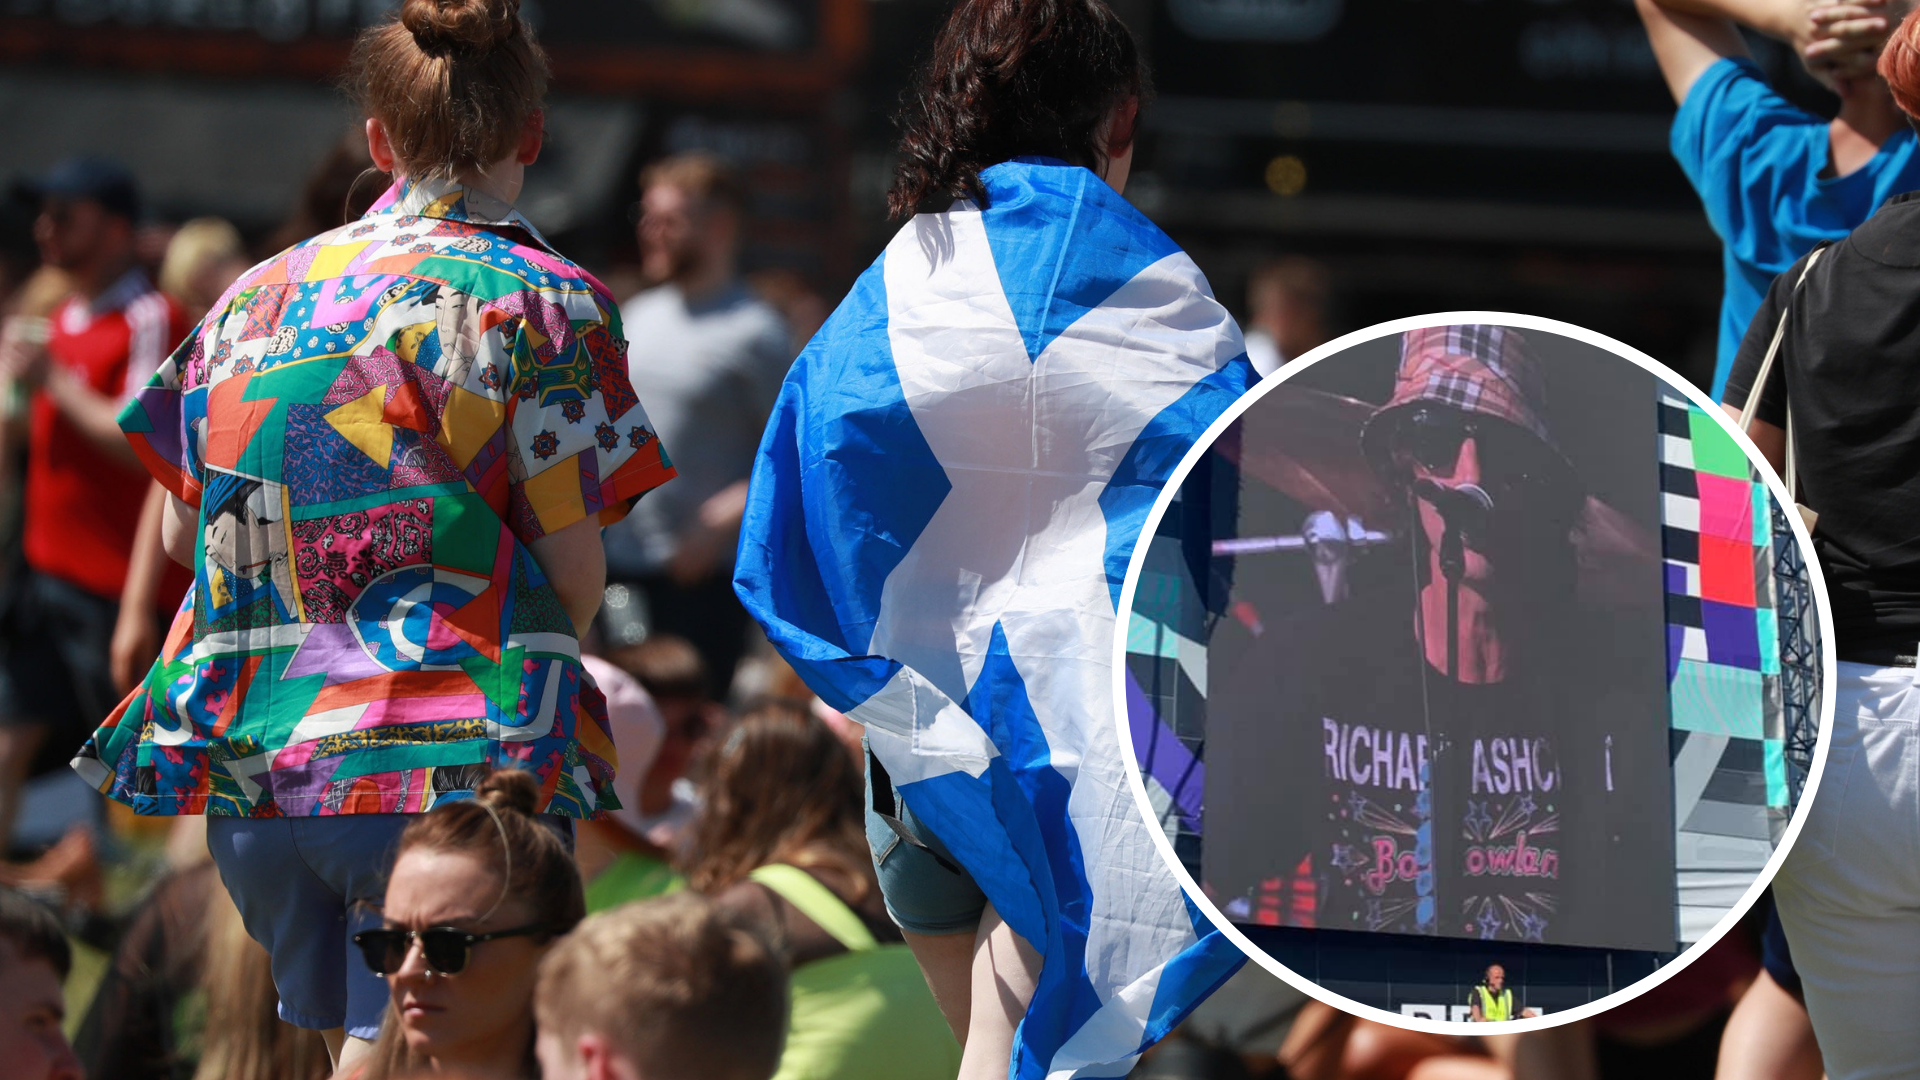 TRNSMT 2019: Richard Ashcroft pays respects to Glasgow music scene with Barrowlands shirt